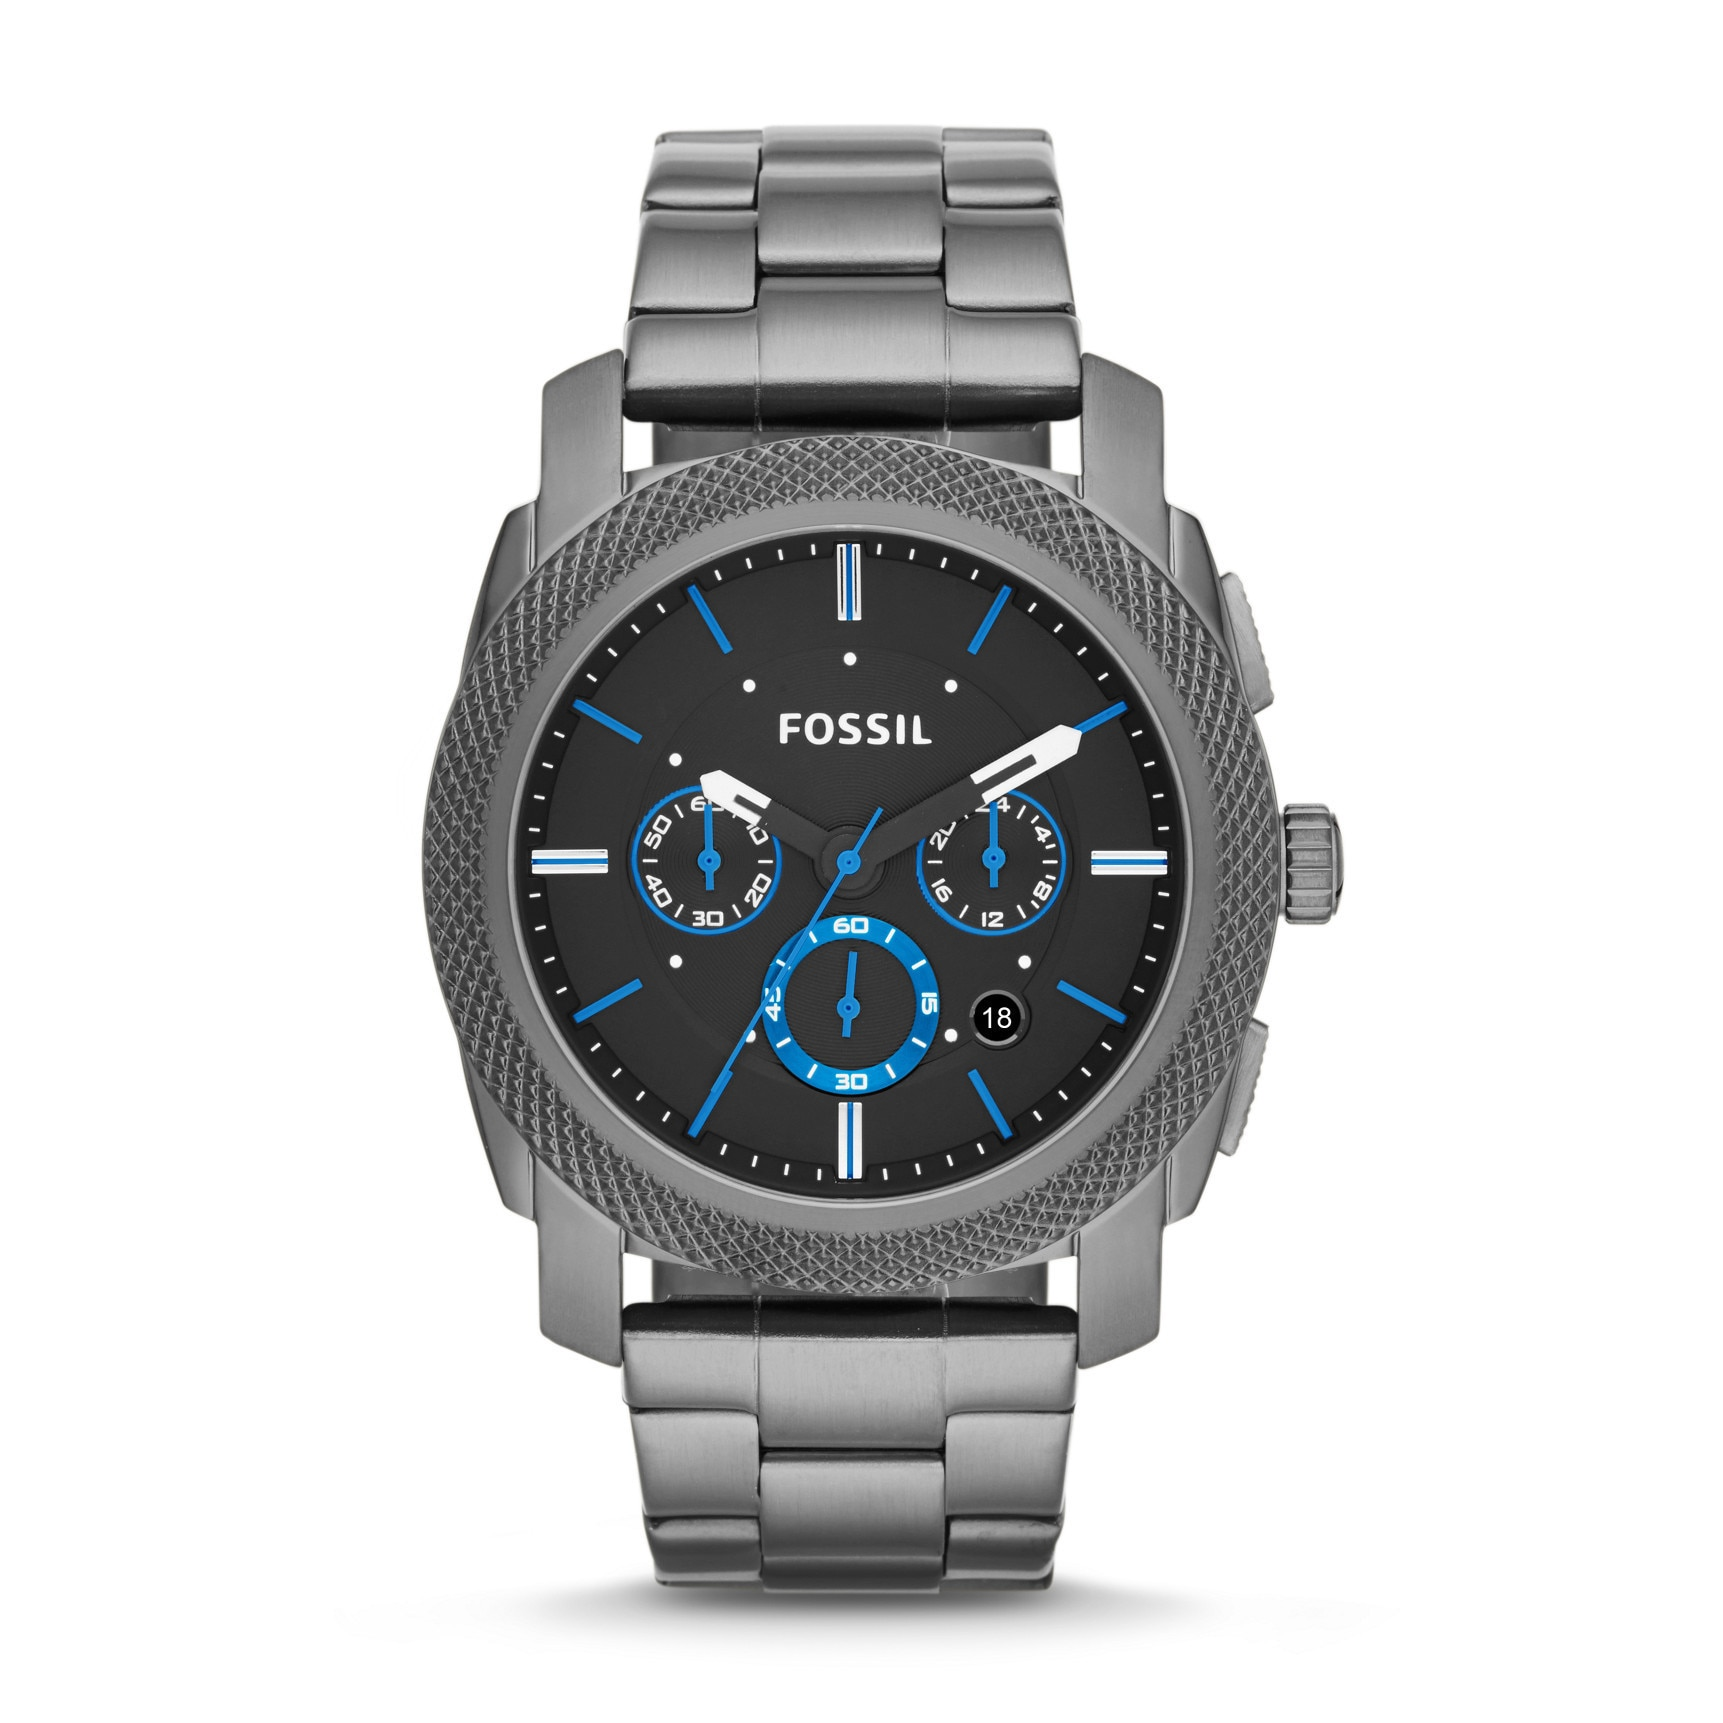 Fossil Men's FS4931 Chronograph Machine Smoke-Tone Watch